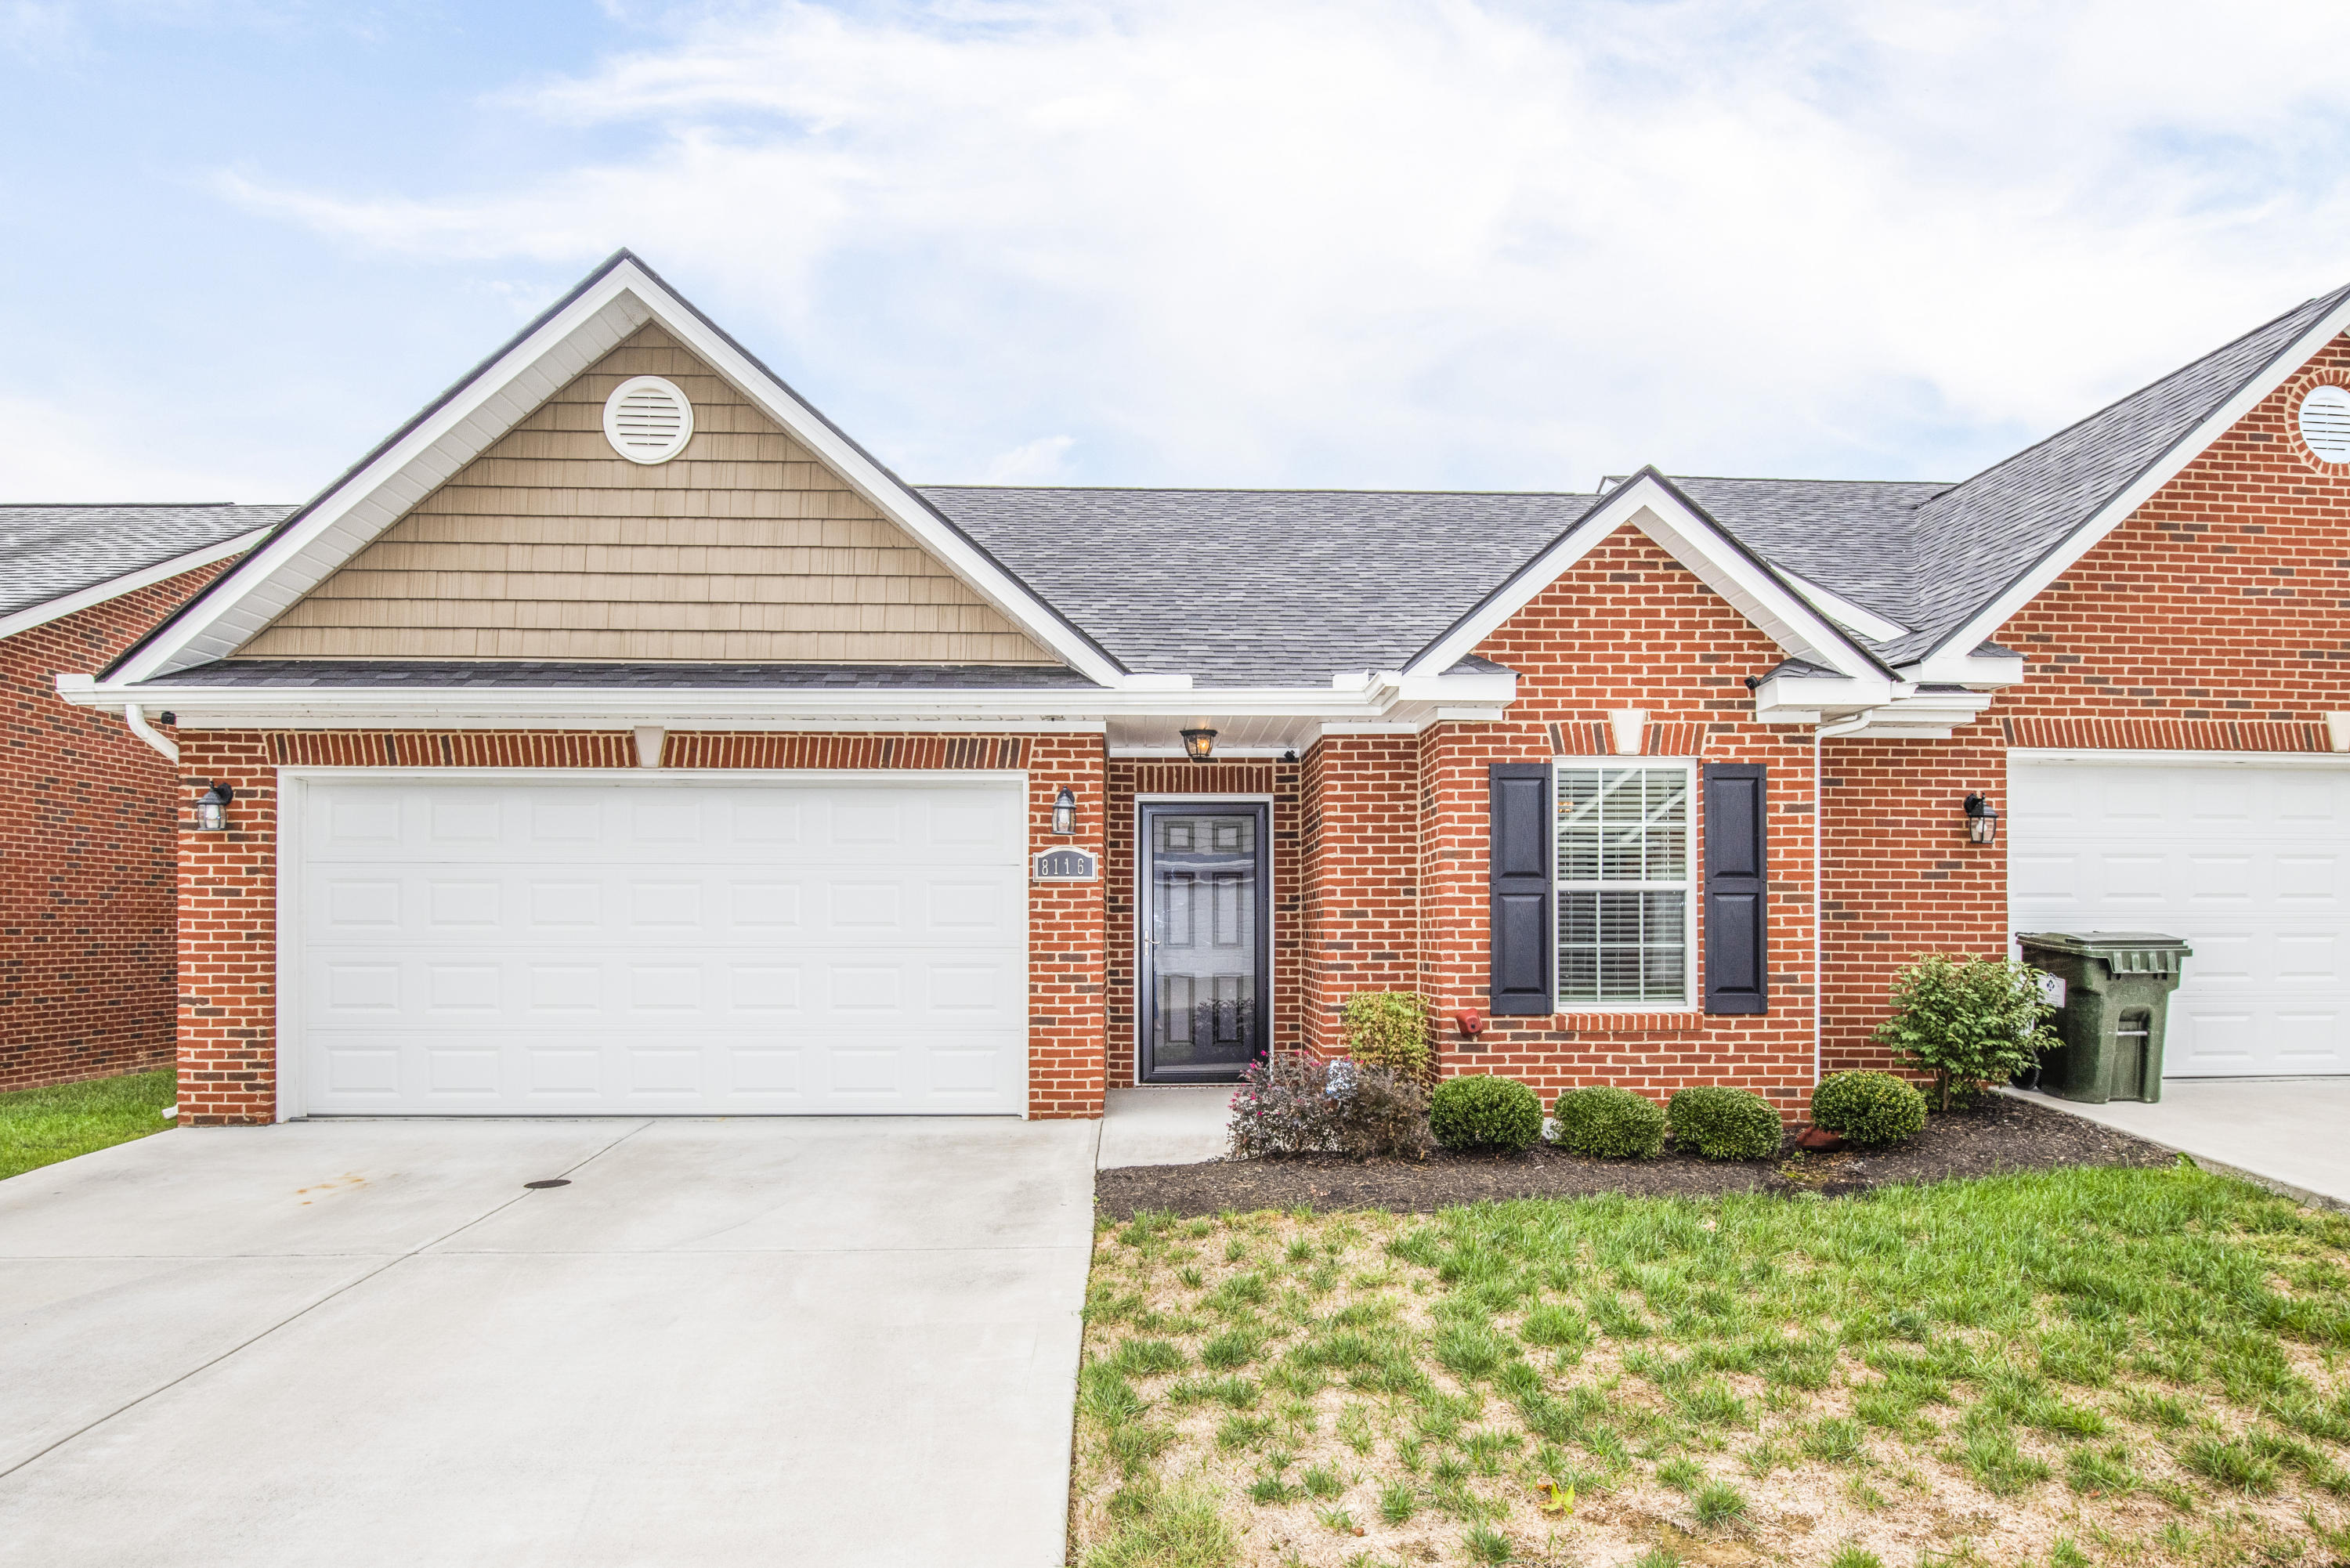 8116 Spice Tree Way, Knoxville, Tennessee 37931, 2 Bedrooms Bedrooms, ,2 BathroomsBathrooms,Single Family,For Sale,Spice Tree,1097358